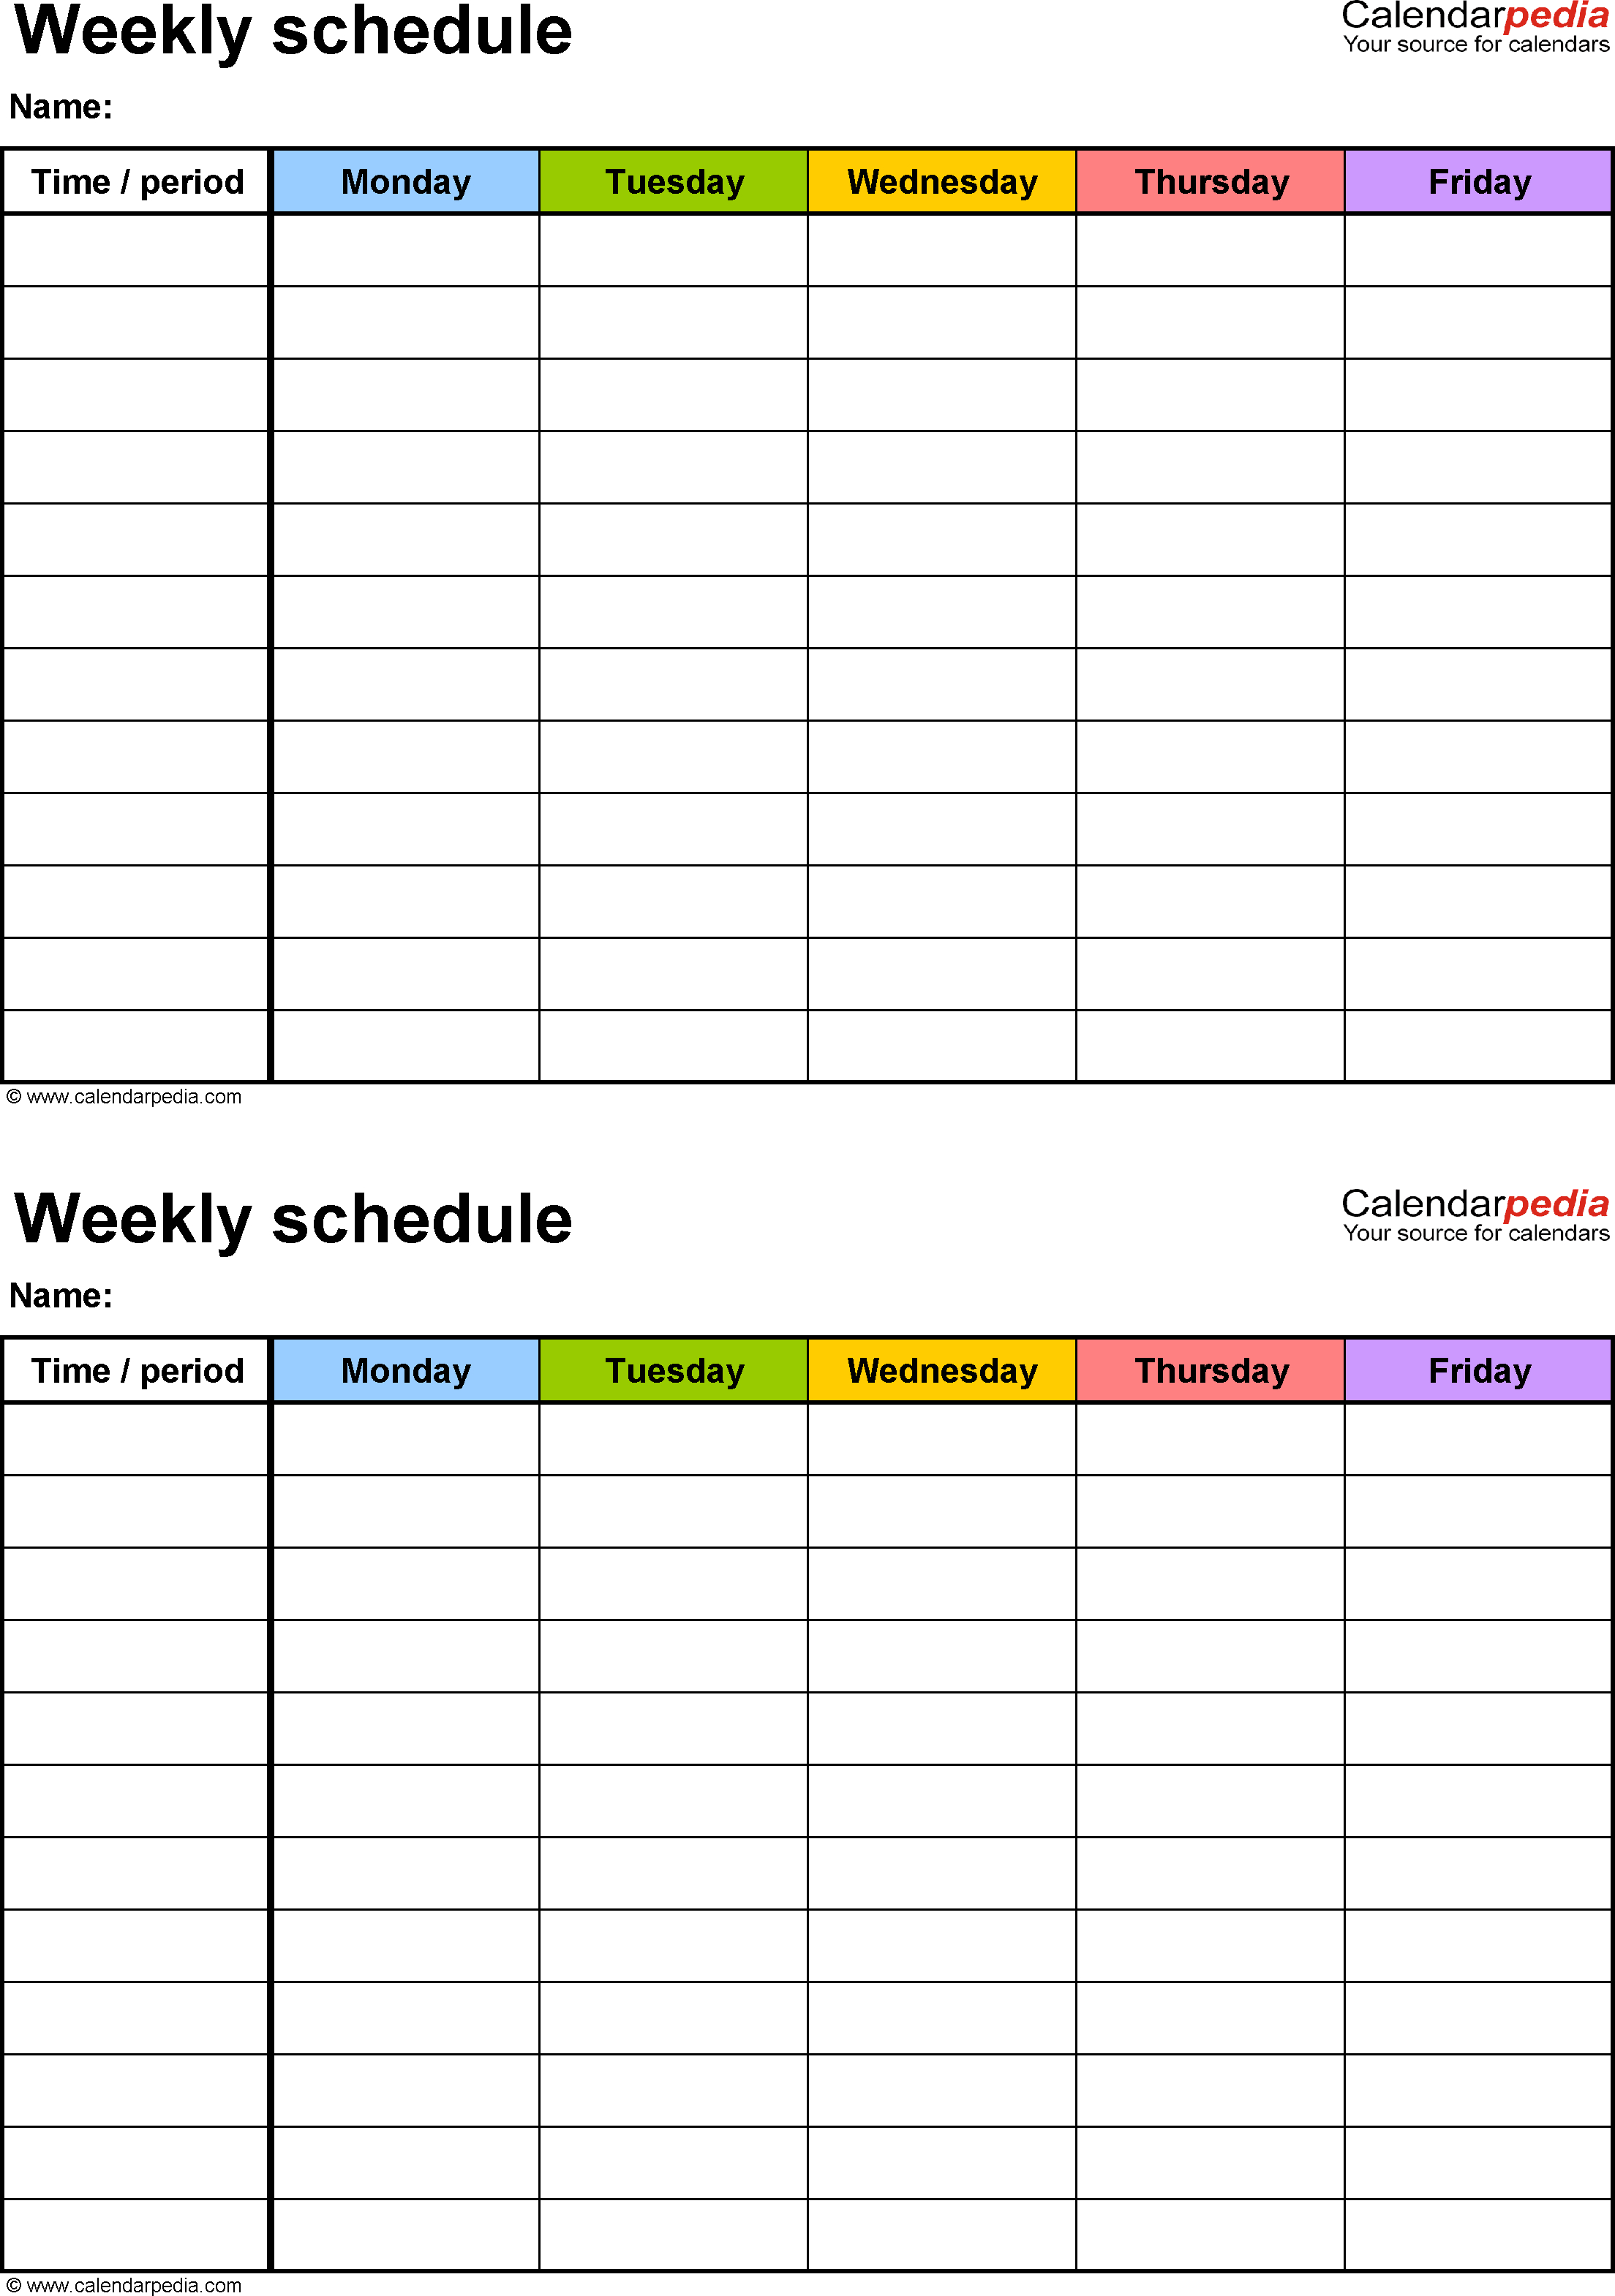 Free Weekly Schedule Templates For Word - 18 Templates pertaining to Calendar Template For Work Week